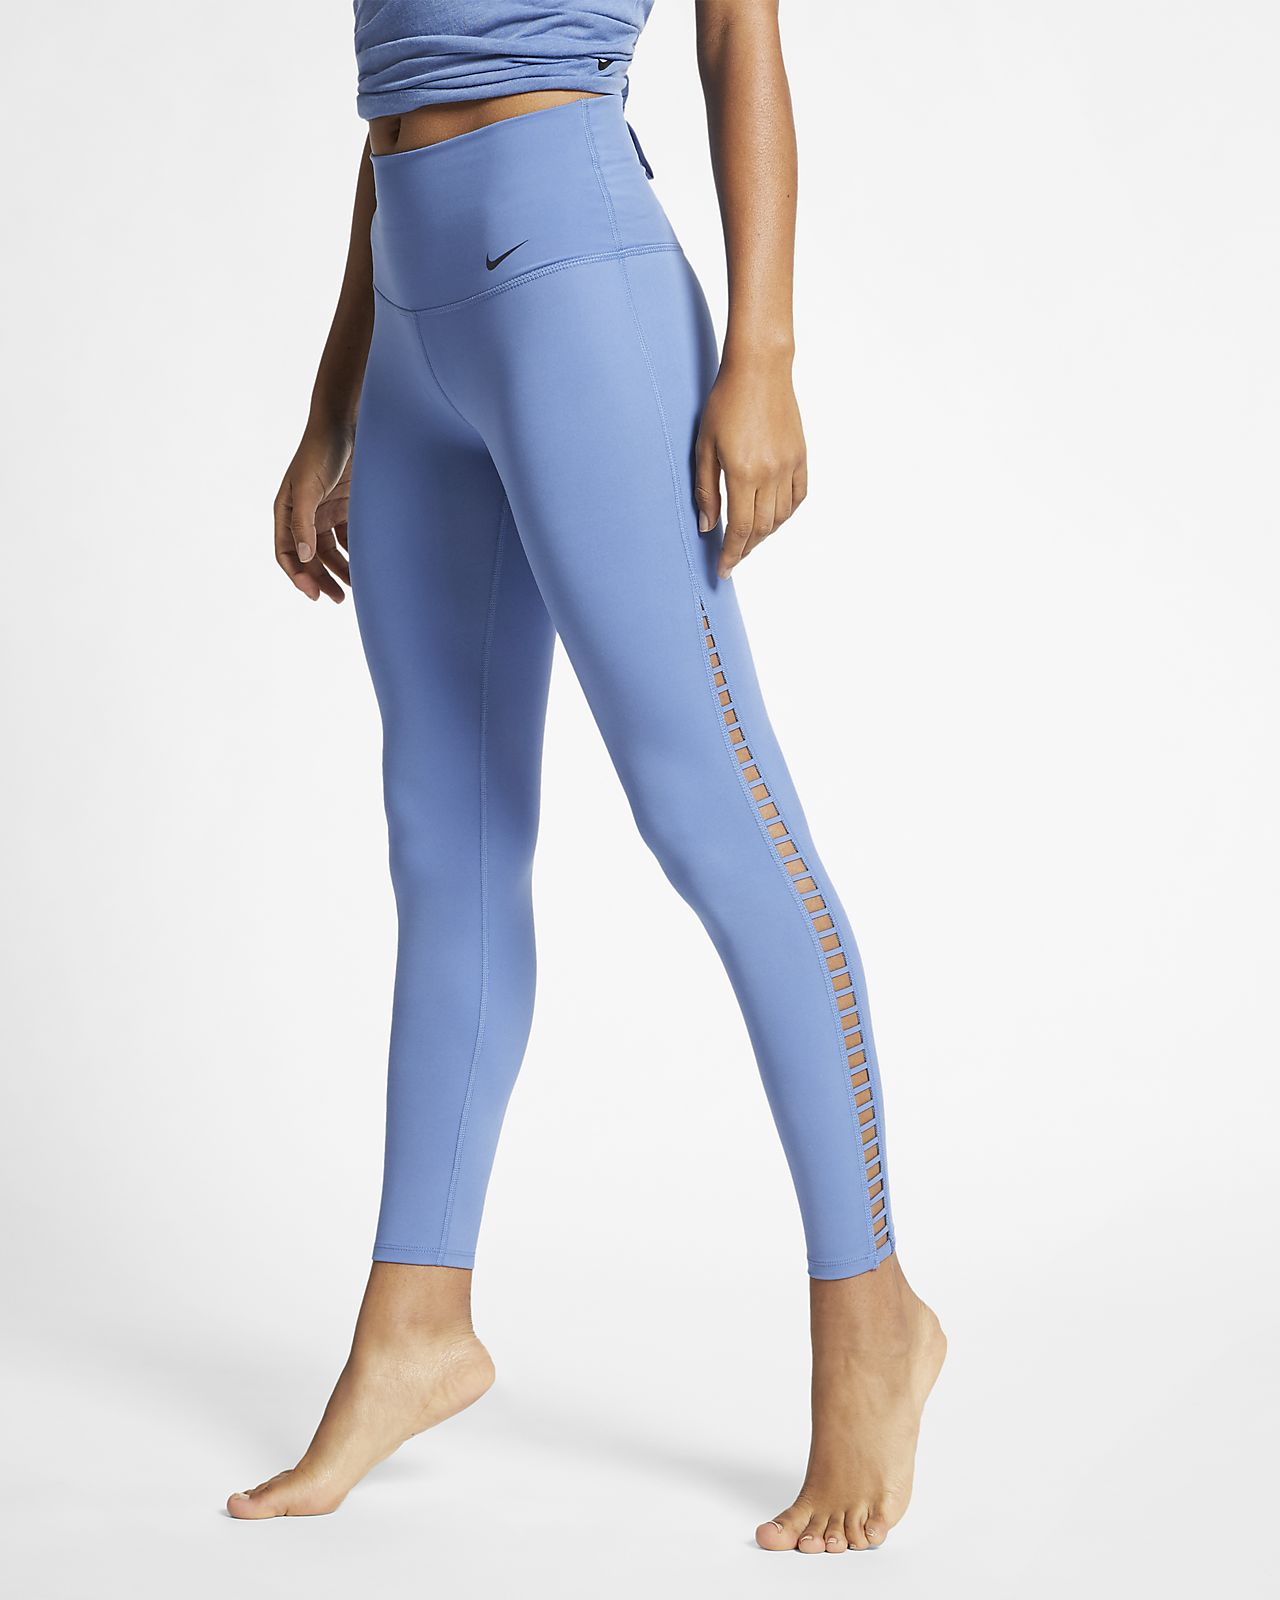 Nike Dri-FIT Power 7/8-Yoga-Trainings-Tights für Damen